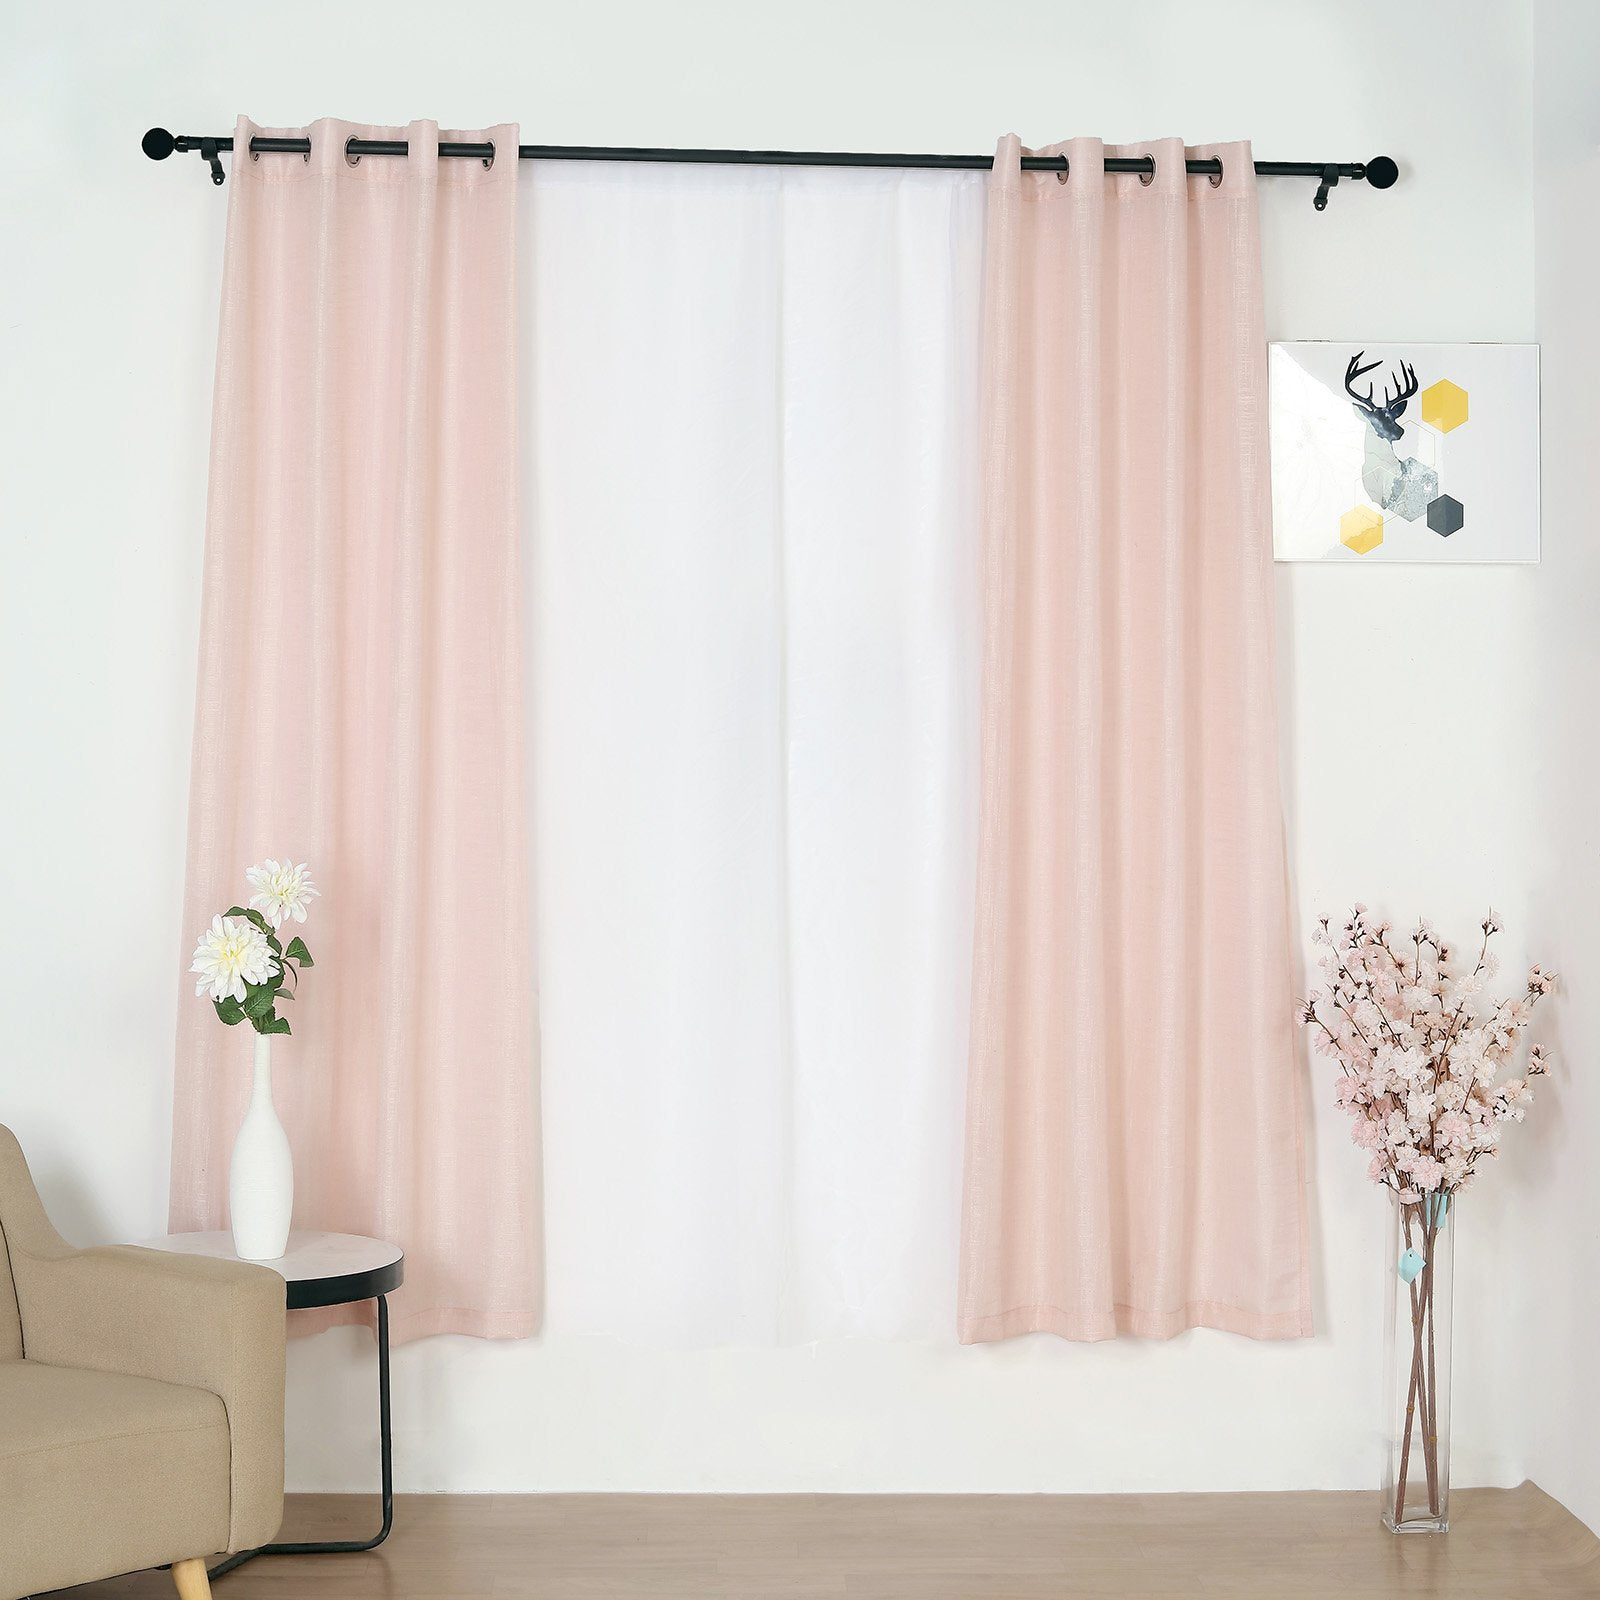 Pack Of 2 52 X84 Faux Linen Curtains Semi Sheer Curtain Panels With Chrome Grommet Rose Gold Blush Efavormart